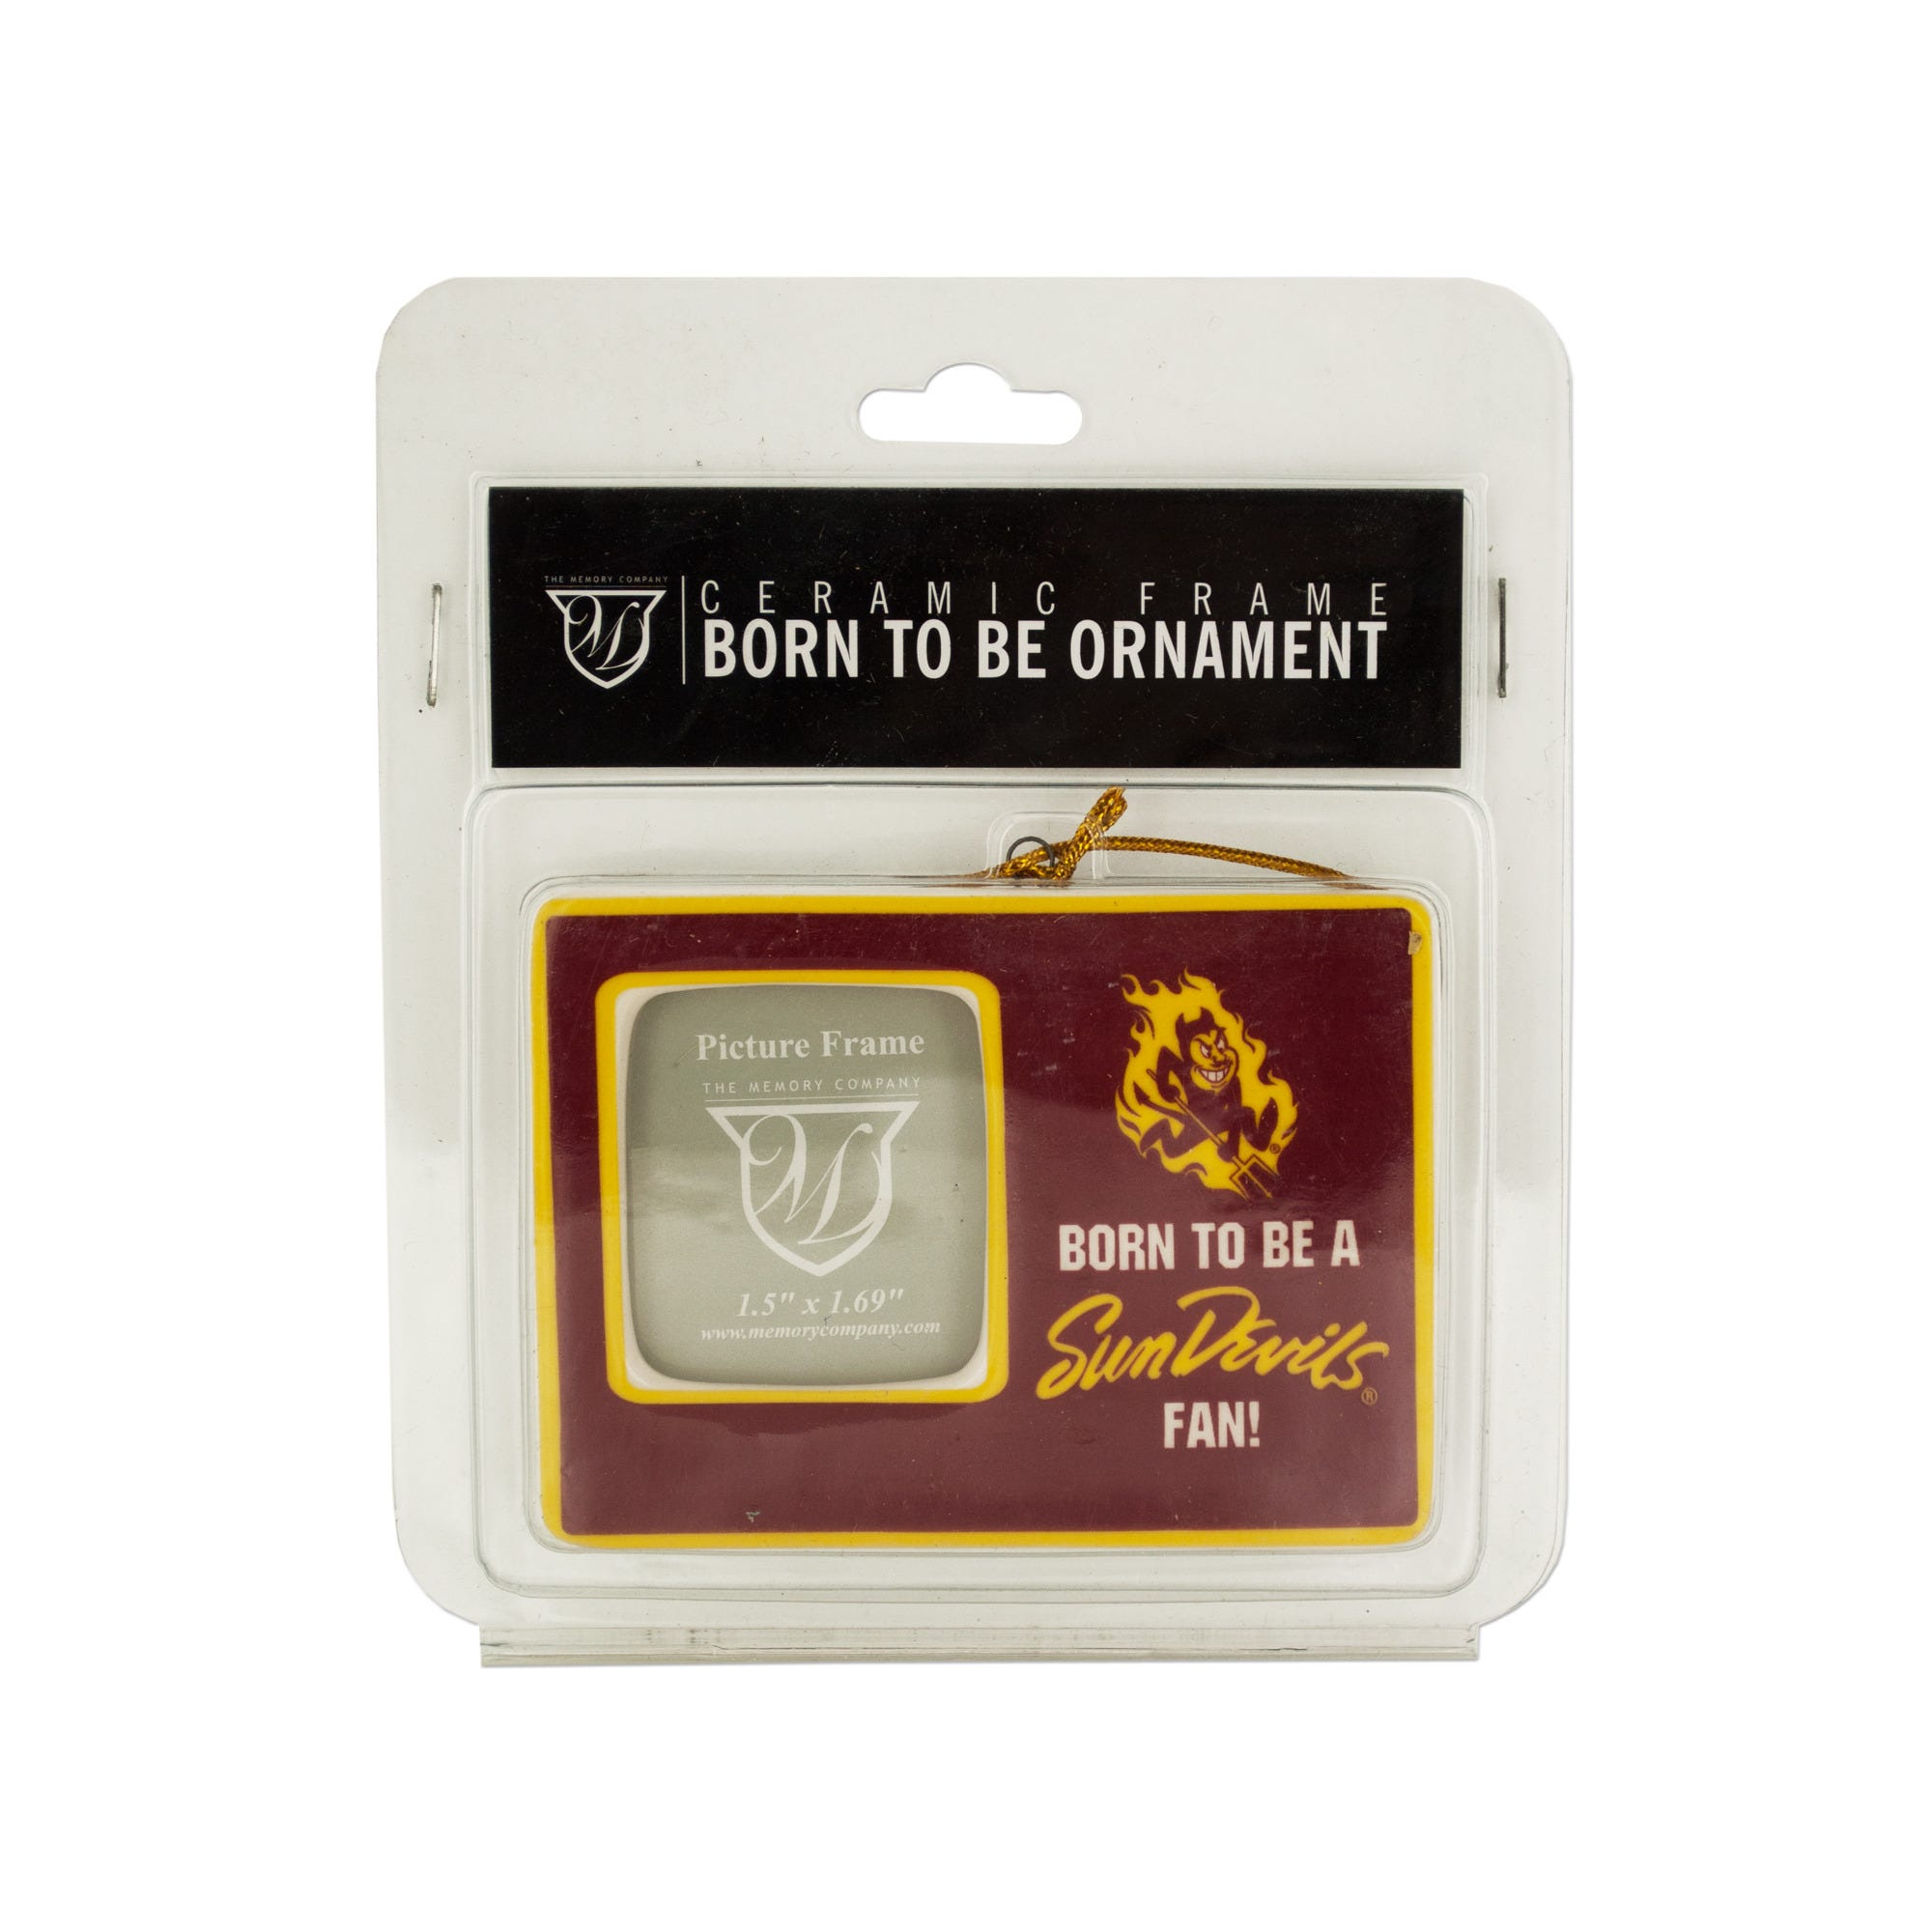 Wholesale licensed now available at wholesale central items 81 120 arizona state university ceramic picture frame ornament qty 18 jeuxipadfo Image collections